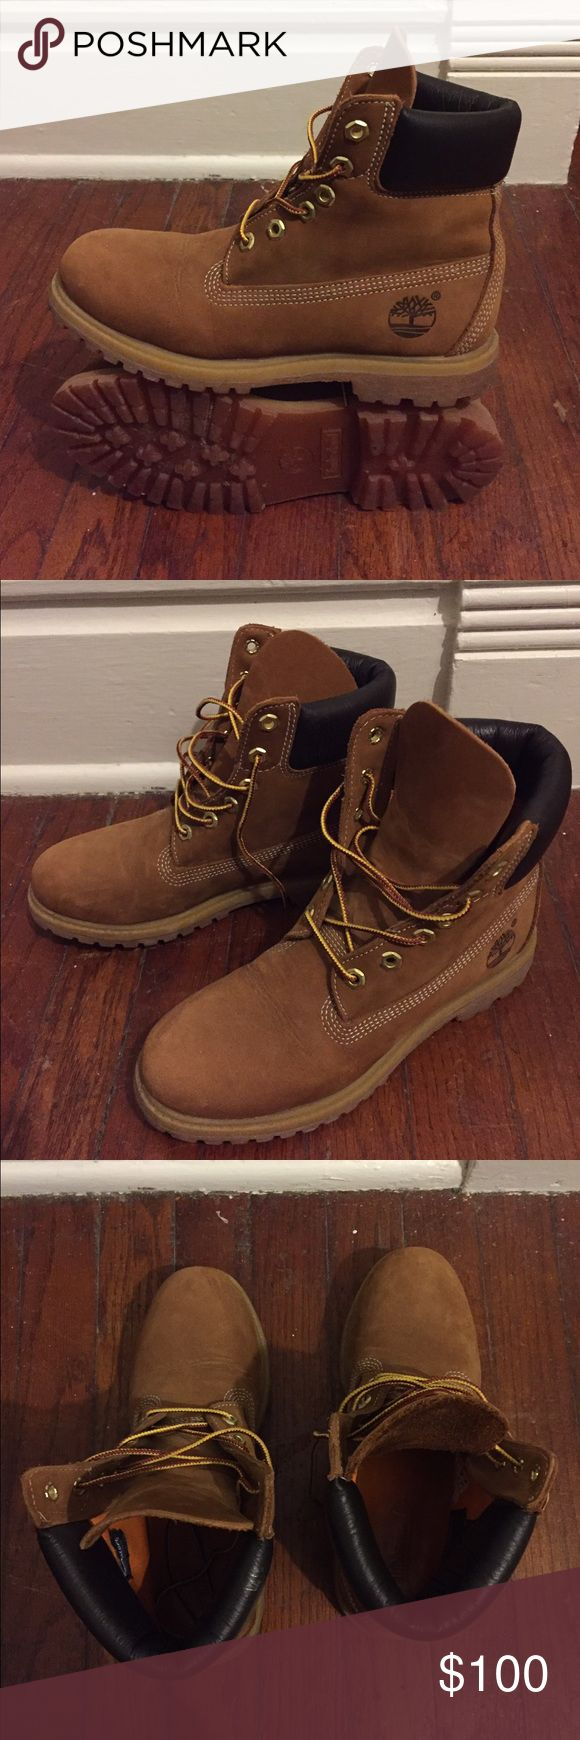 Timberland Women's Boots 7M women's 6 inch waterproof boots. Almost new. Timberland Shoes Lace Up Boots